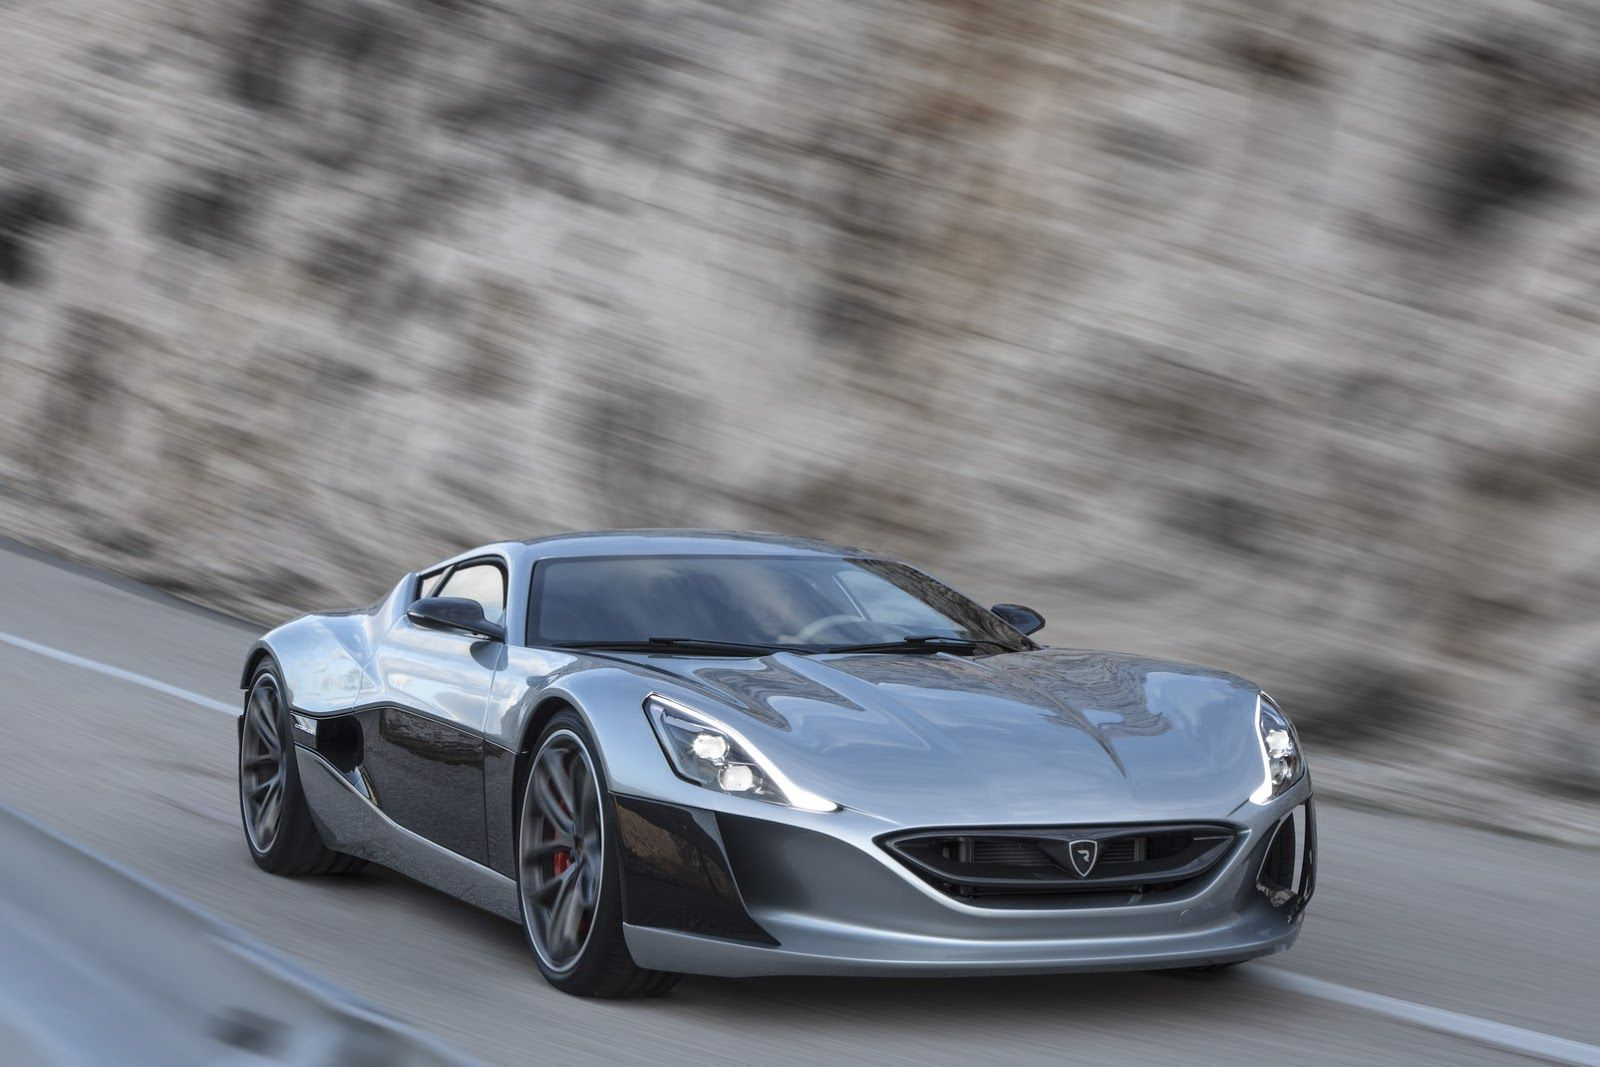 The Rimac Concept One Electric Supercar Takes Over Super Cars Tesla Roadster Hybrid Car